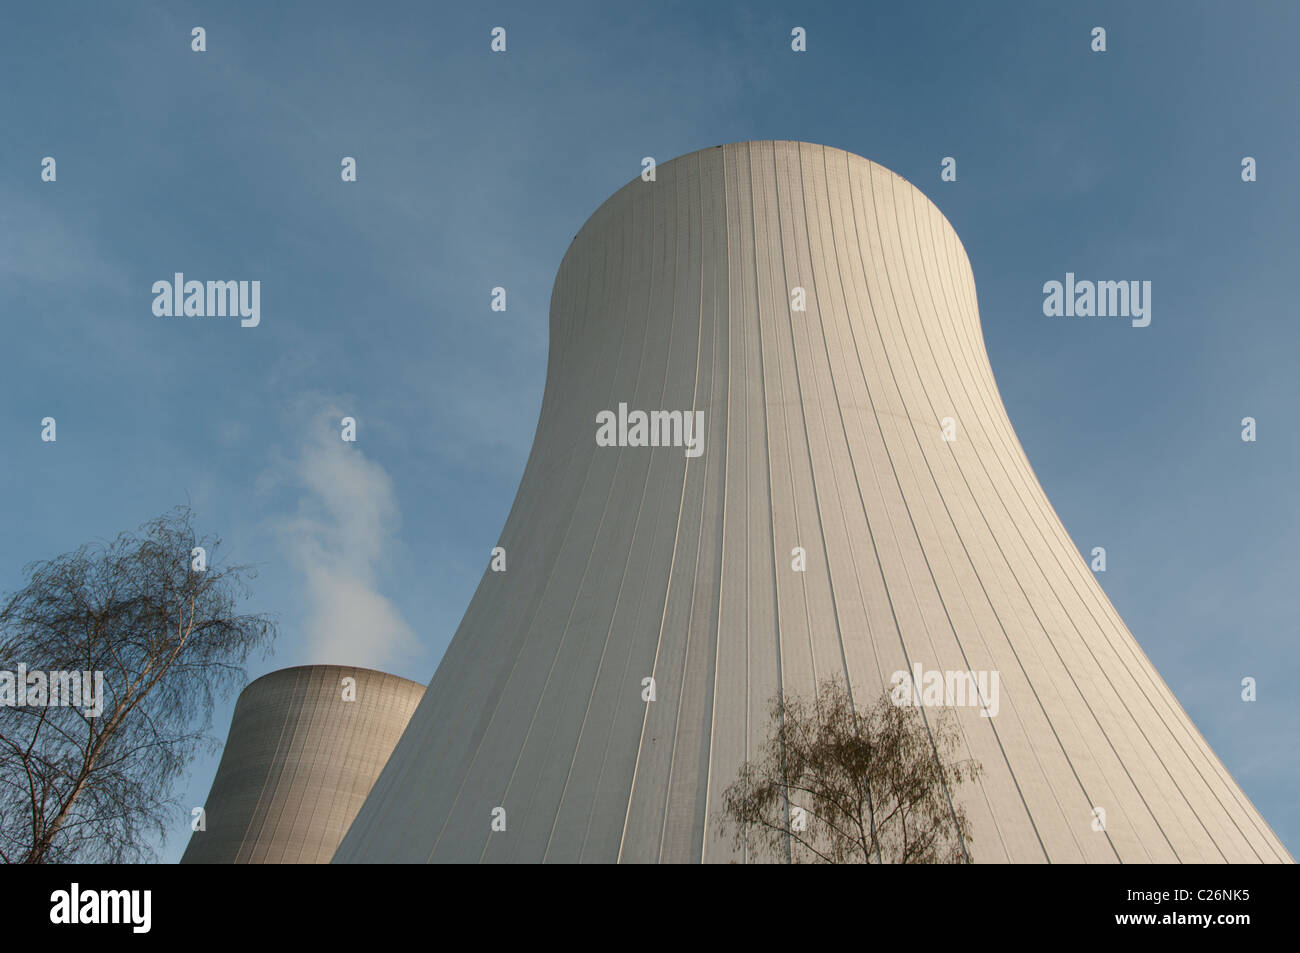 Cooling Tower of an atomic Power Plant - Stock Image